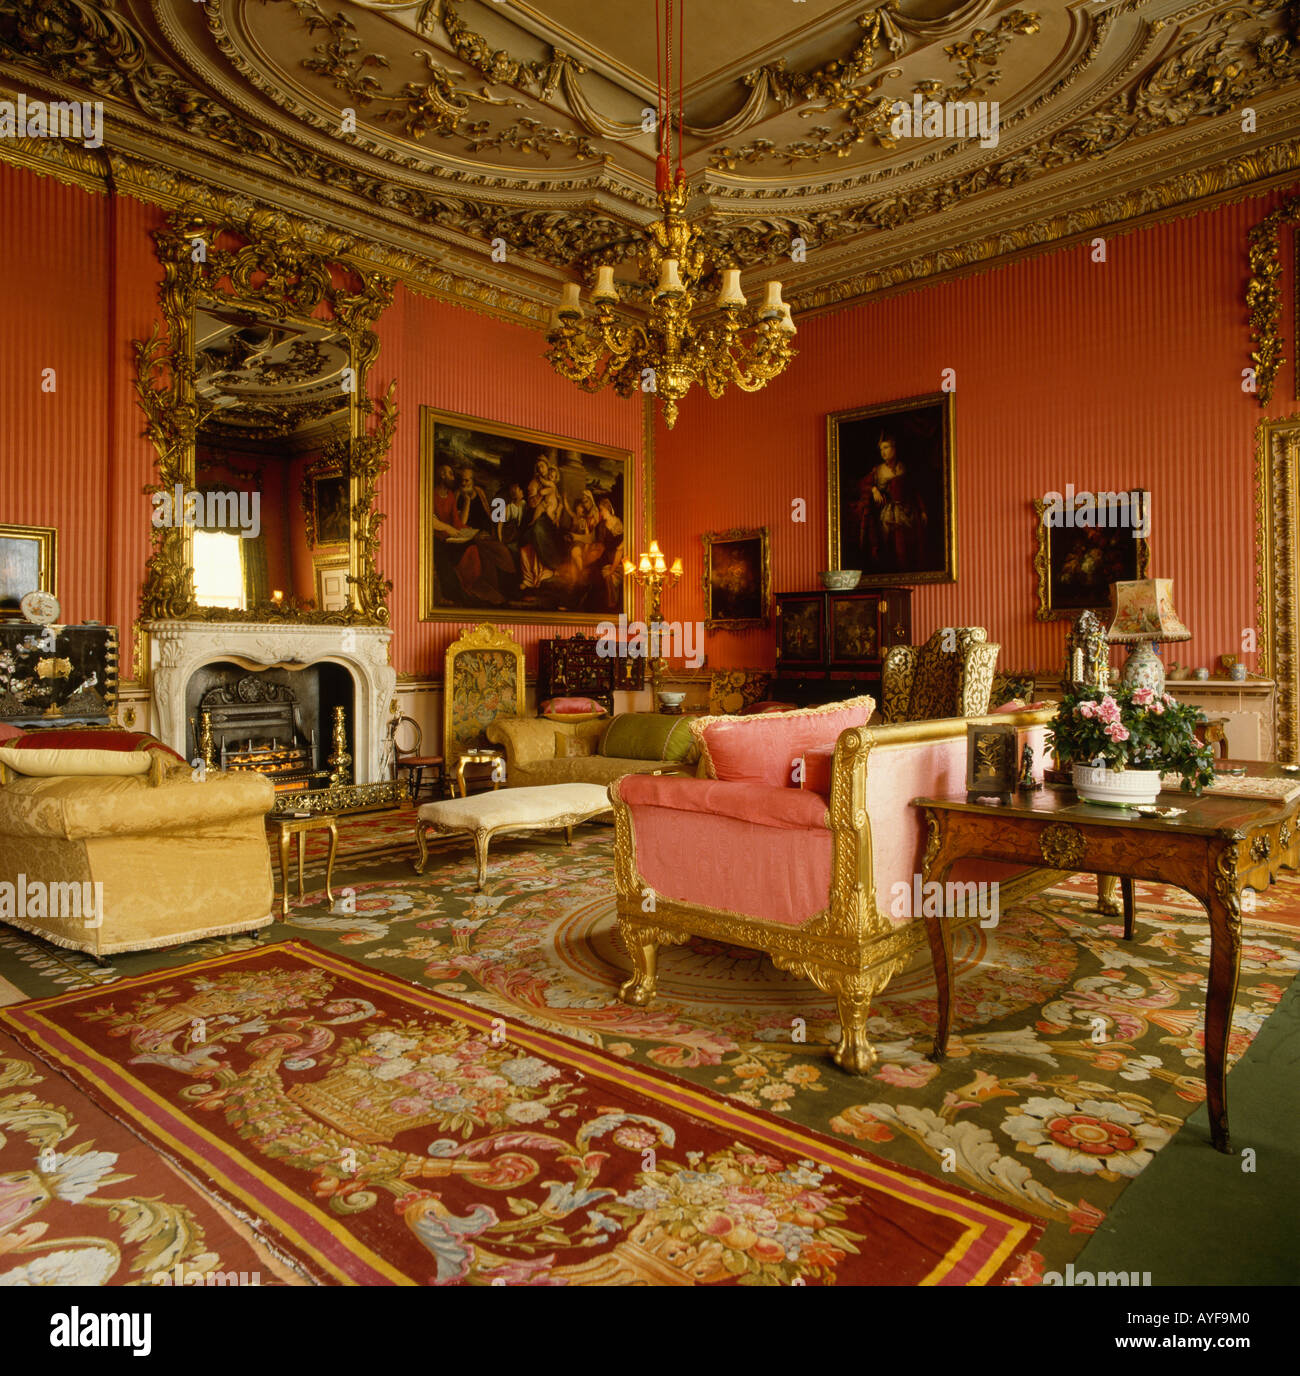 Amazing Red Drawing Room In Stately Home With Antique Furniture And Patterned  Carpet   Stock Image Part 18